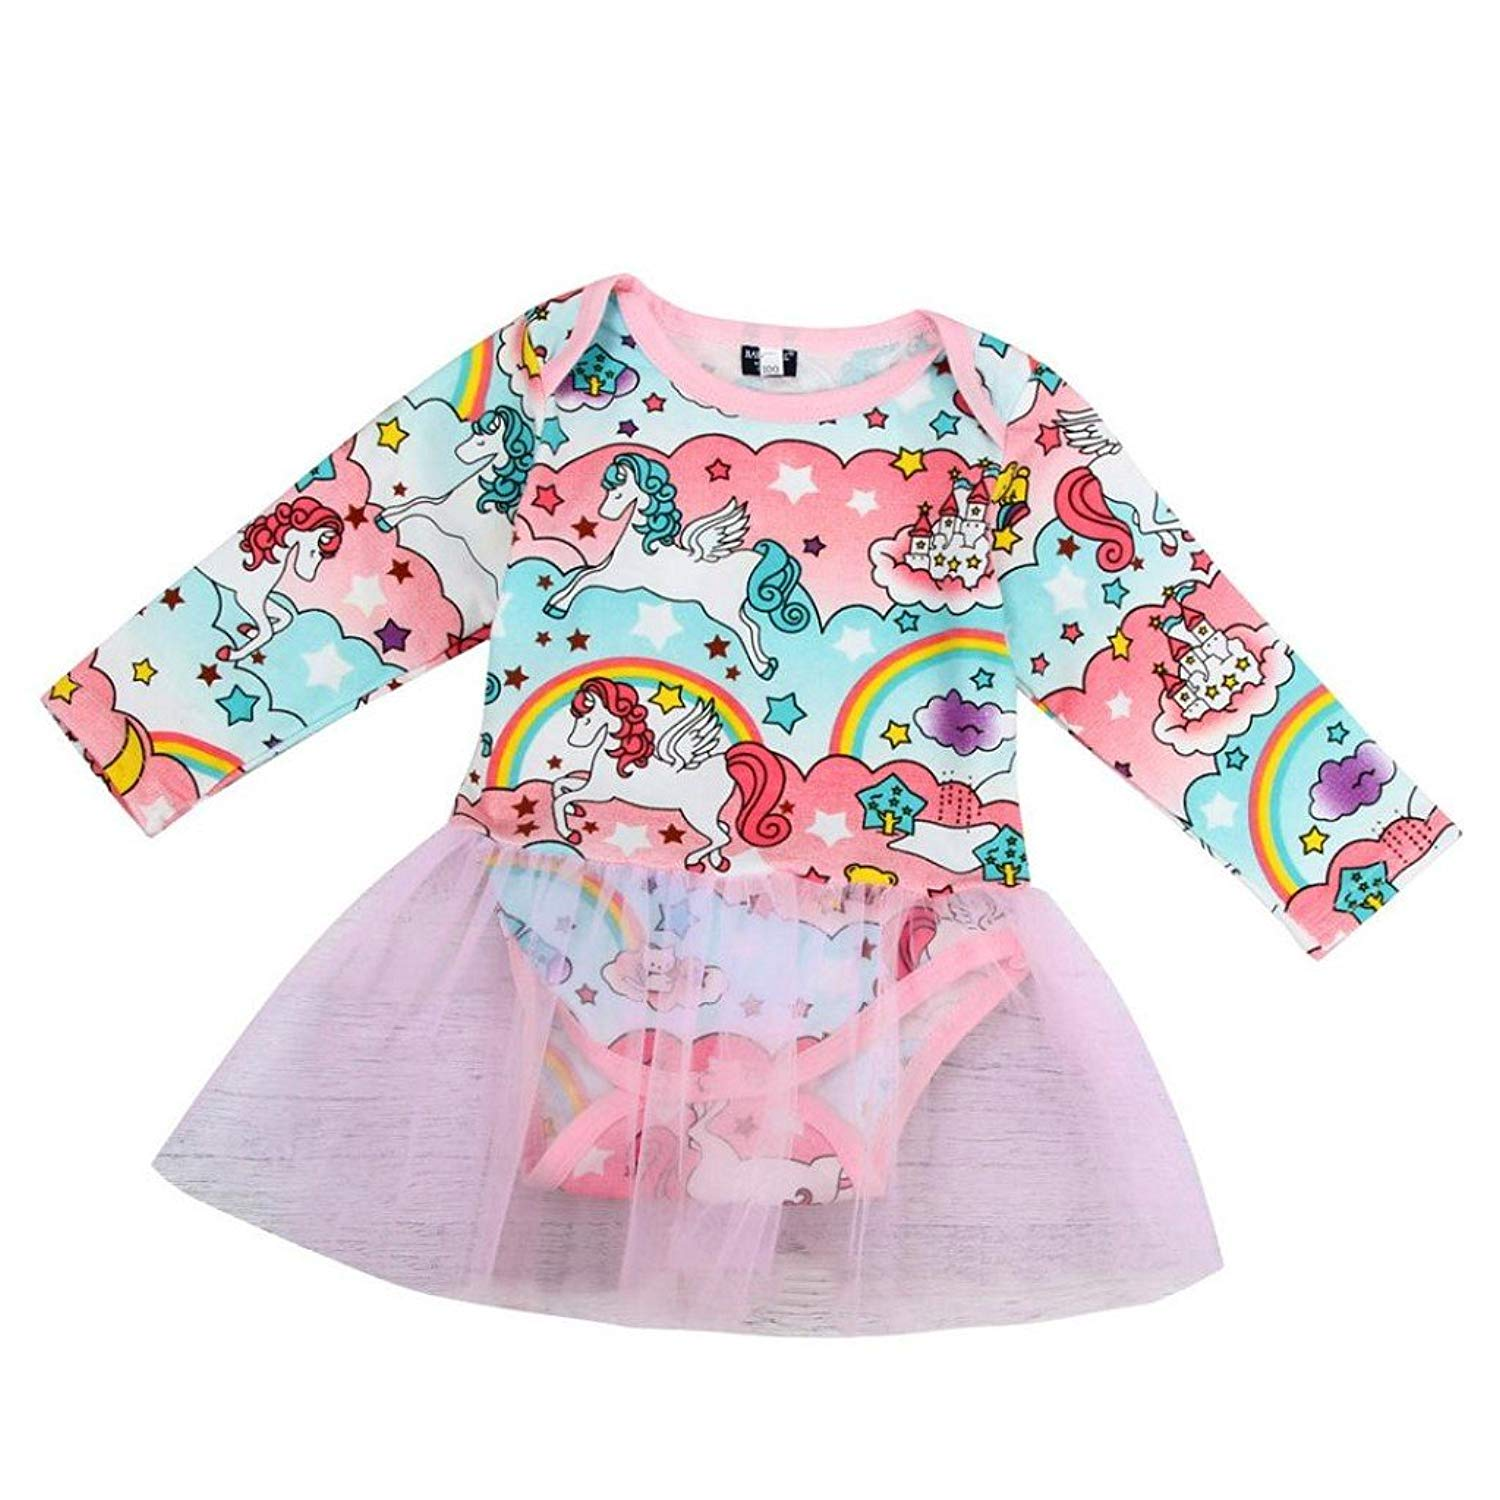 9289bc17d396 Buy Carter  39 s Baby Girls 1-Pc Snug Fit Cotton Footed Sleeper ...